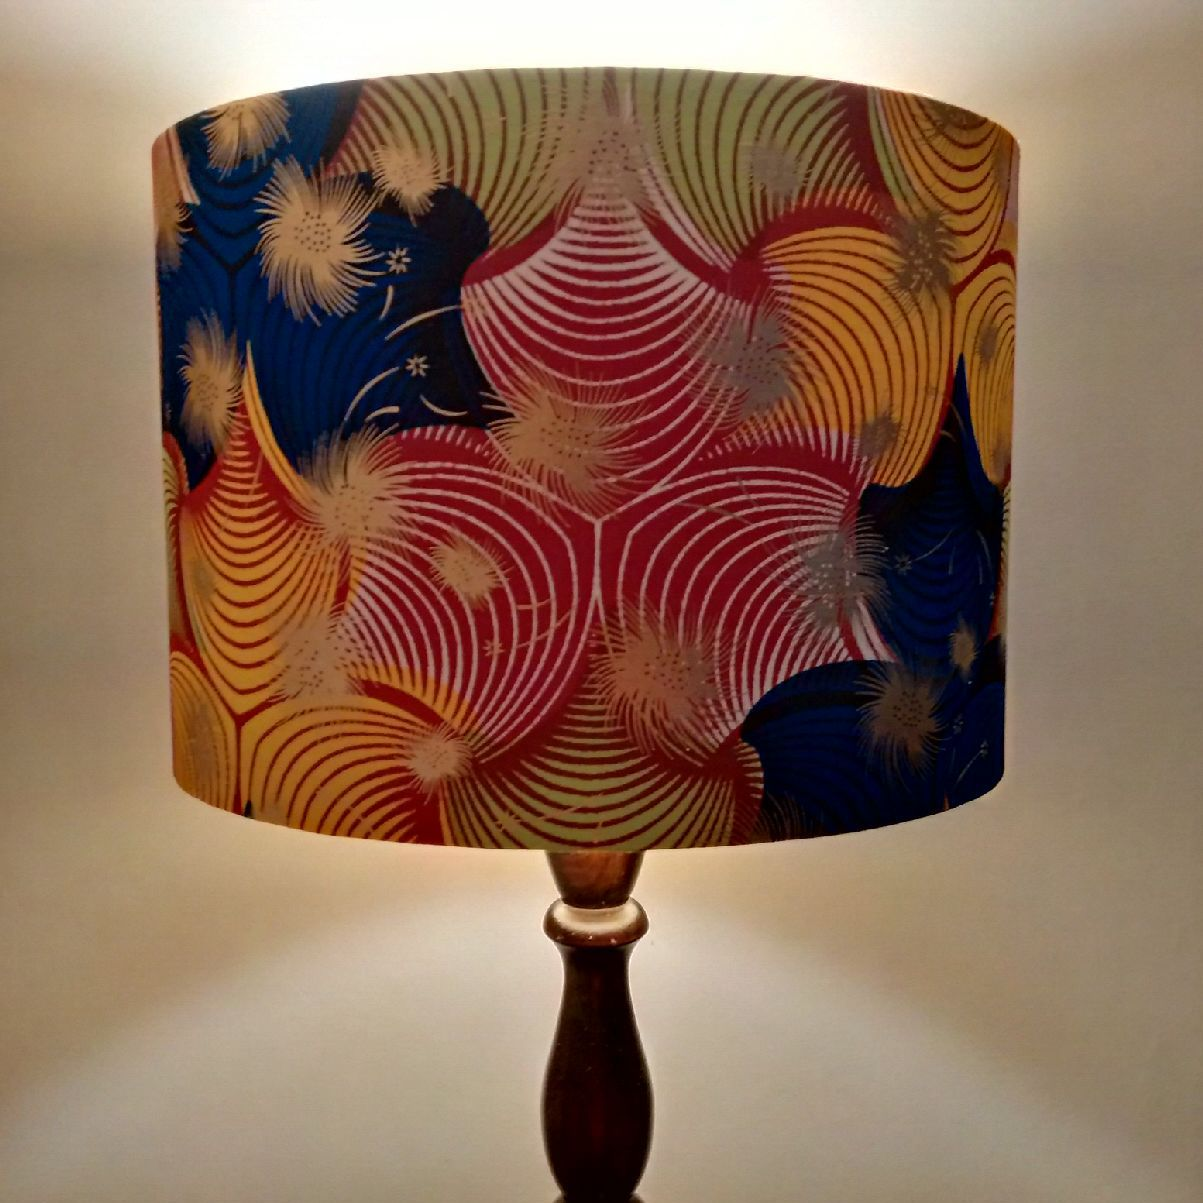 Tropical gold african lamp shade funke lampshade my fab fashion detola geek tropical gold african lamp shade funke lampshade bigcartel shopindie aloadofball Images